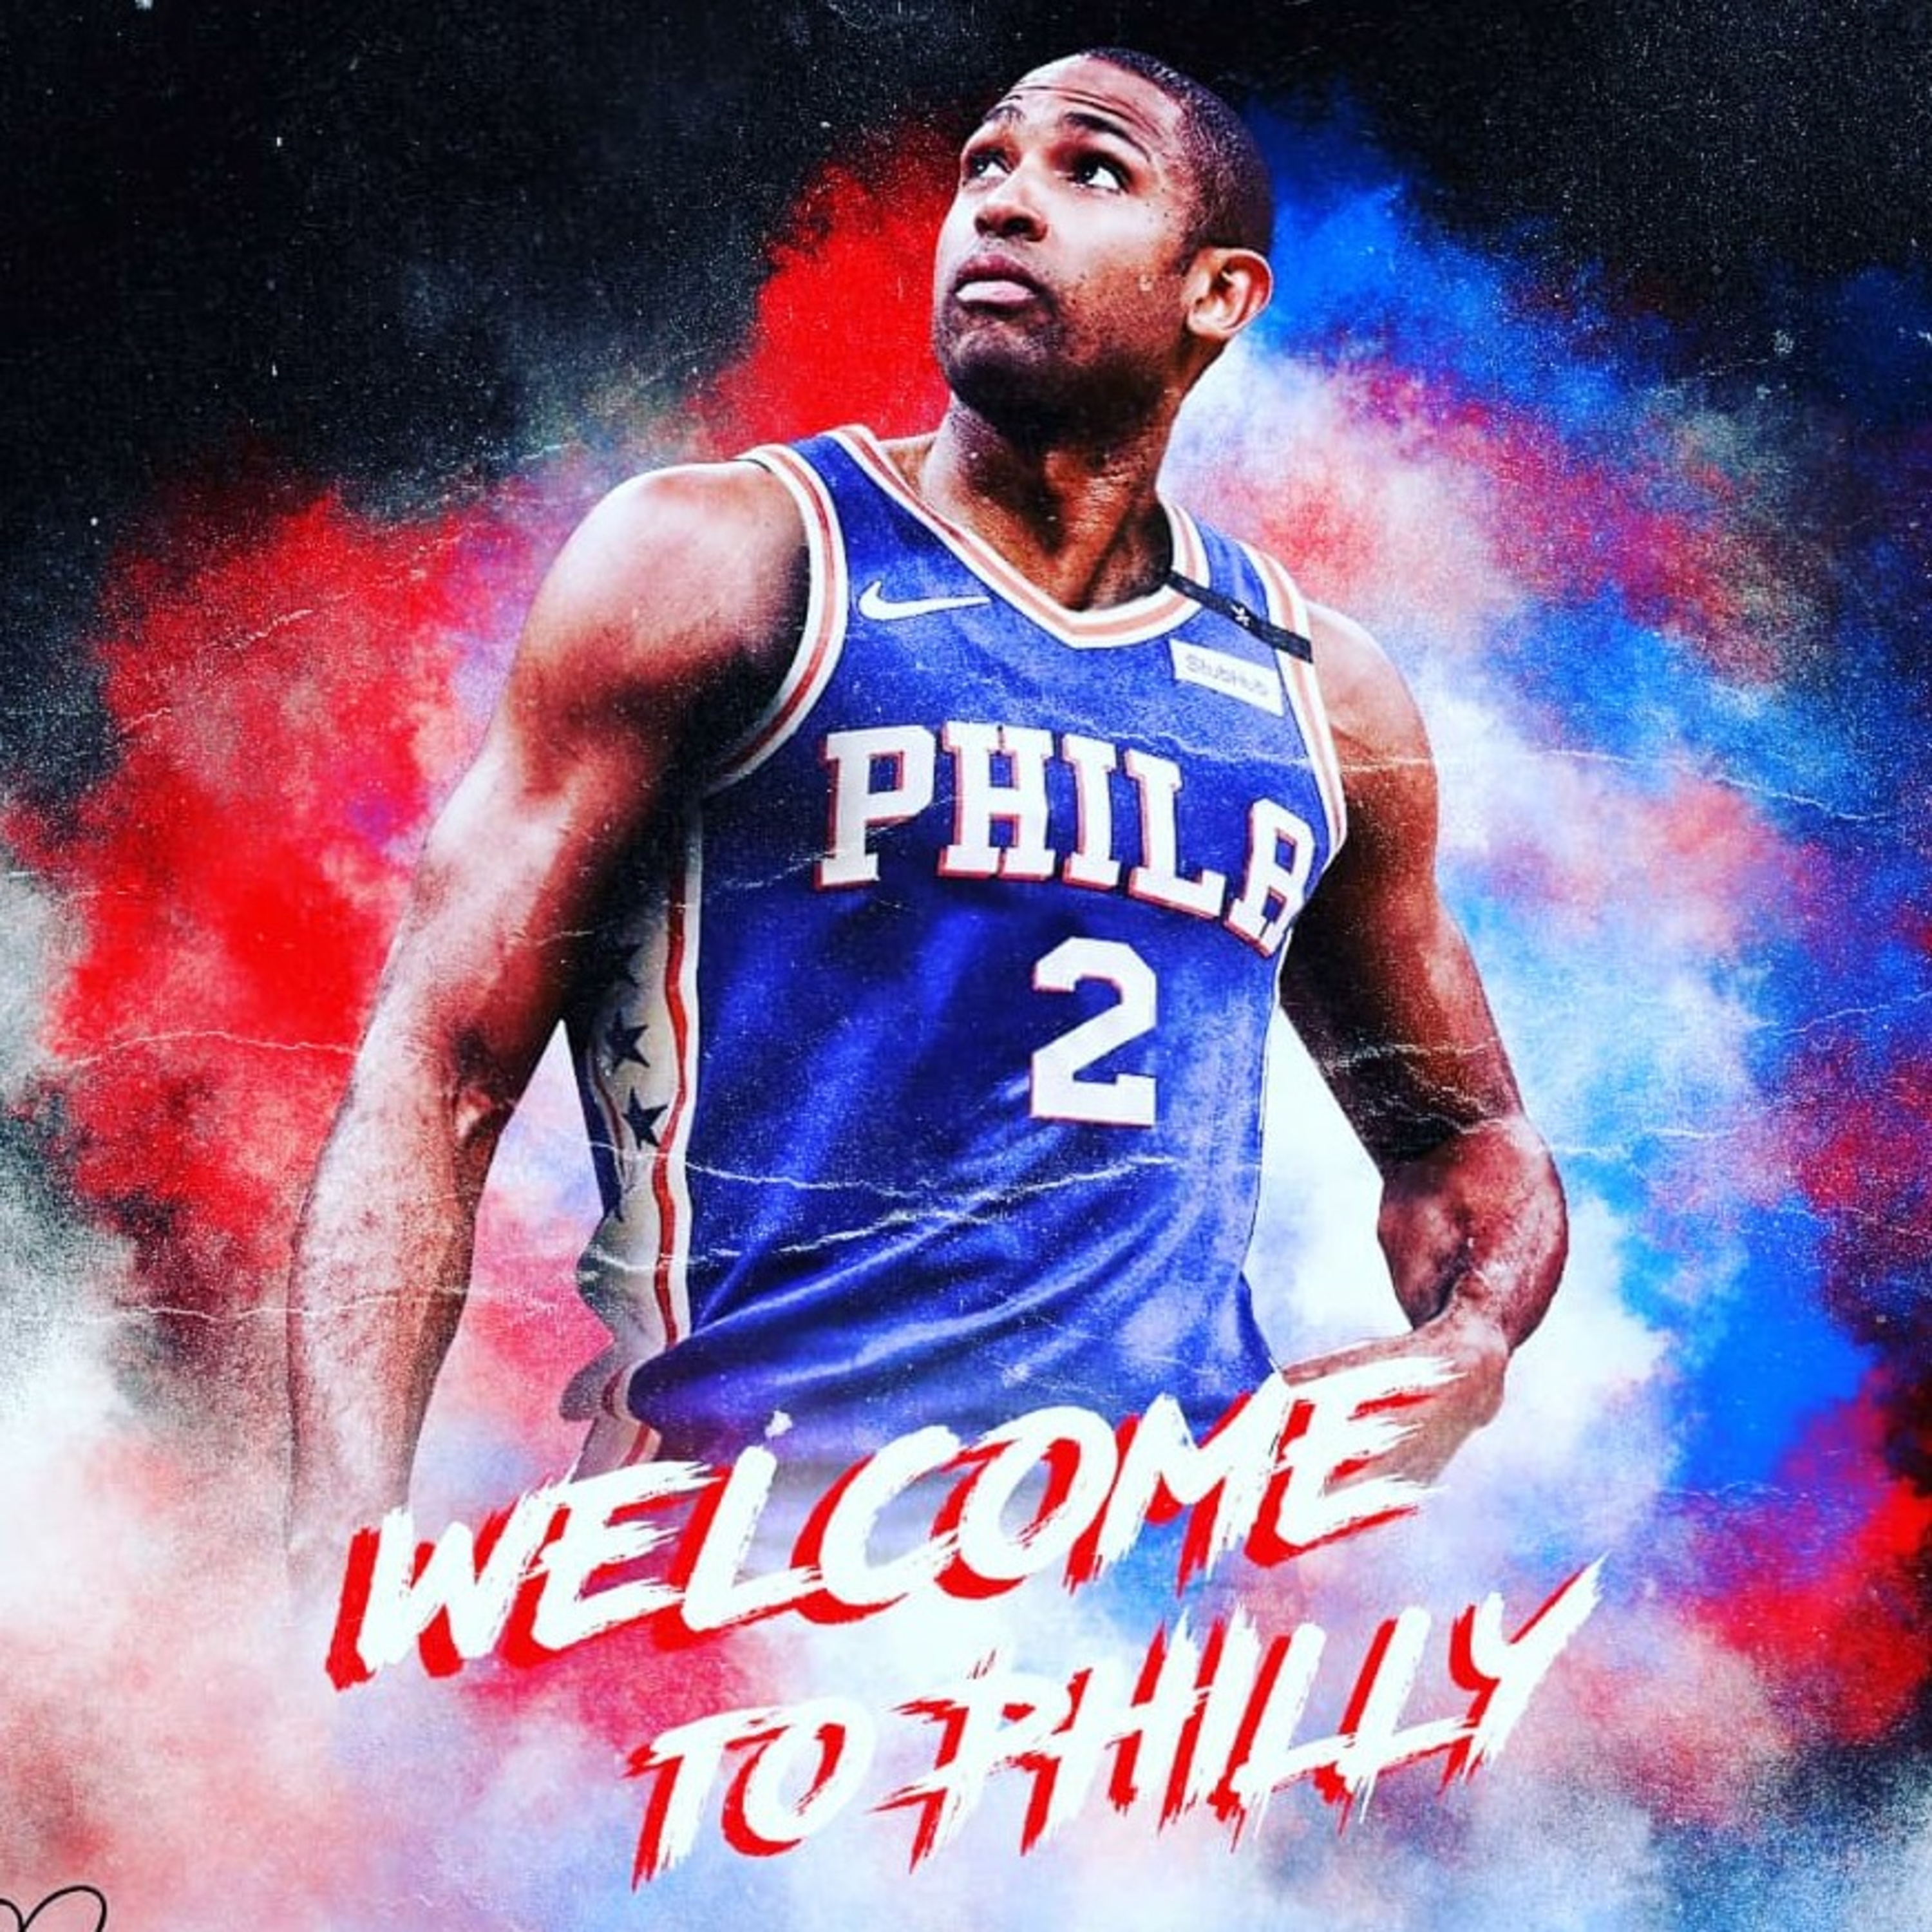 #76ers radio: Al Horford, Mike Scott, and Josh Richardson are now 76ers. break down on free agency, the impact of the new Big 5 and more